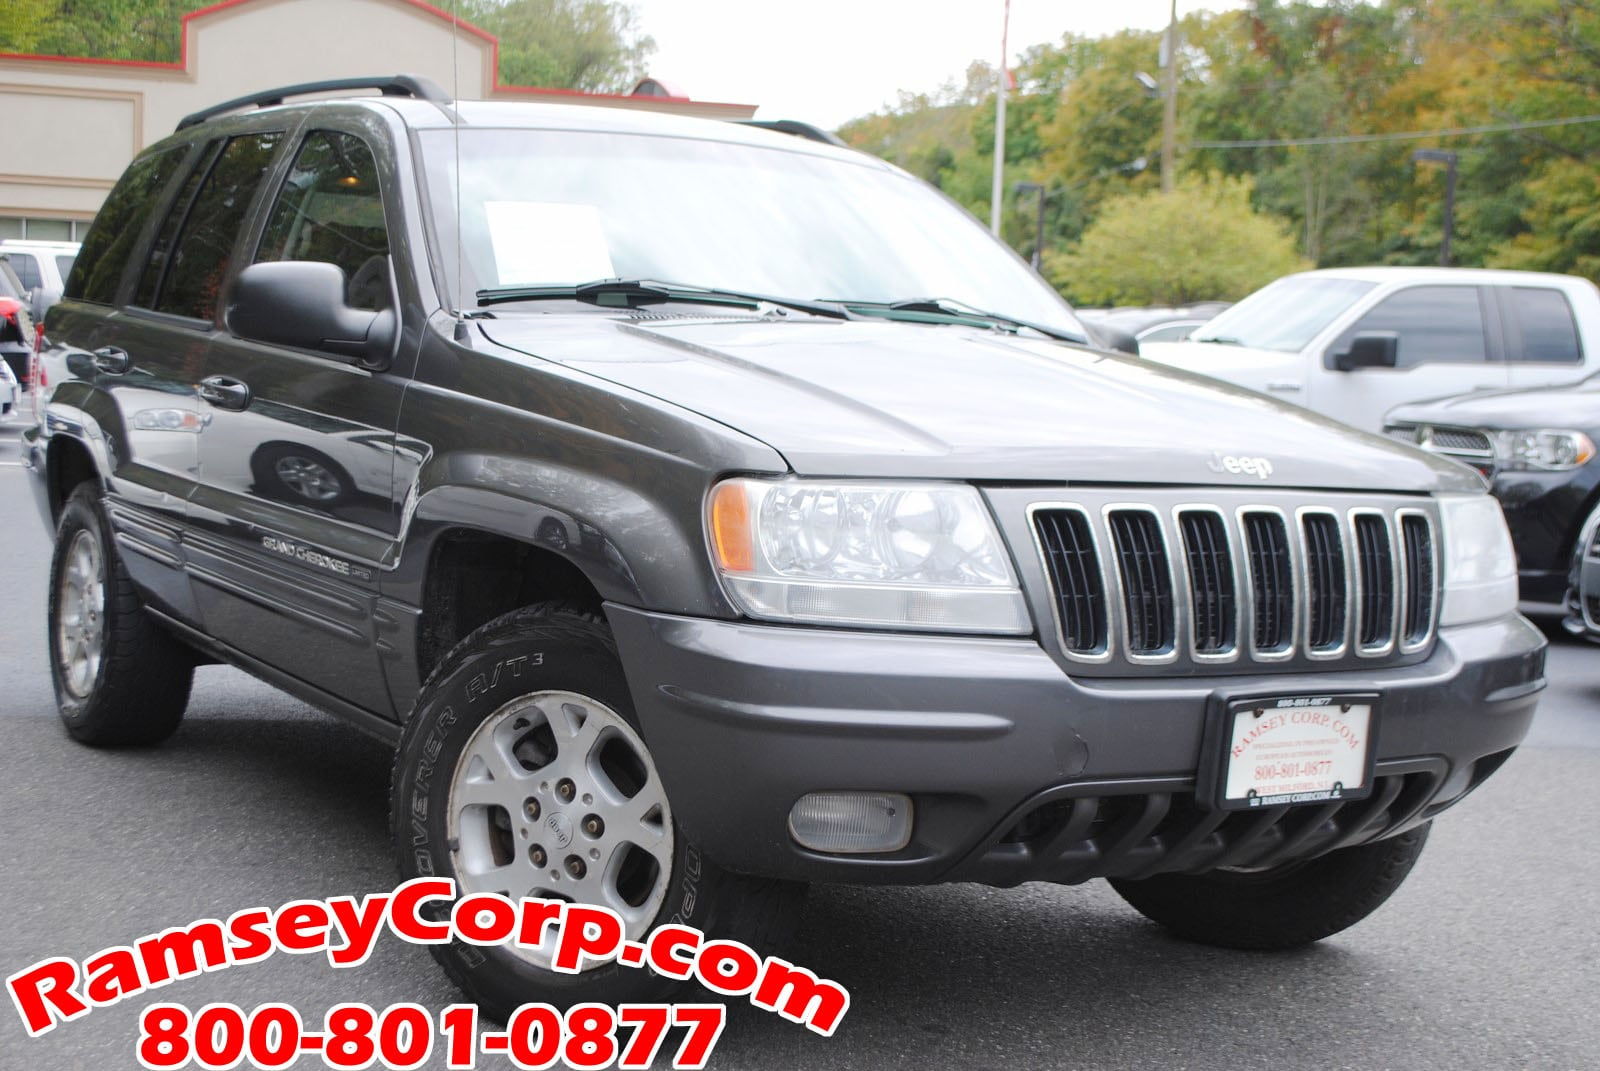 used 2002 jeep grand cherokee for sale at ramsey corp vin 1j8gw58n32c319204 used 2002 jeep grand cherokee for sale